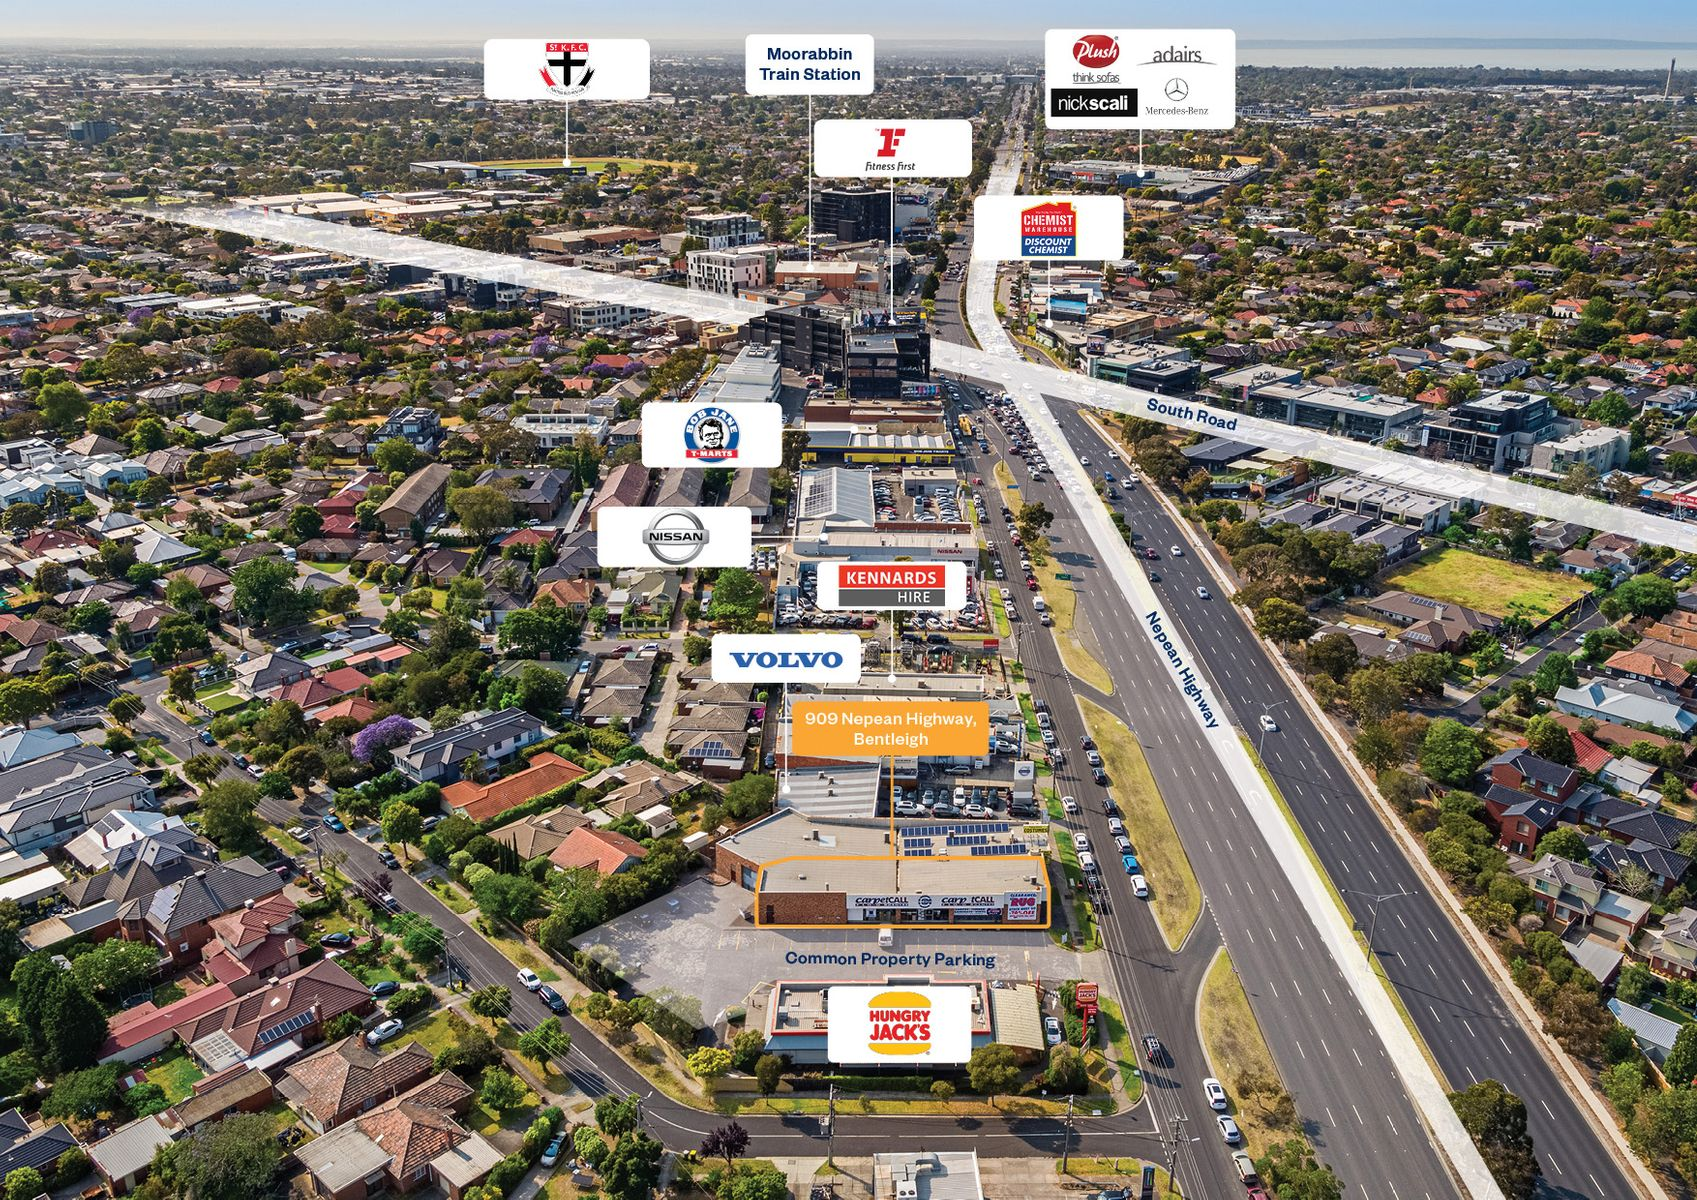 TC0143 909 Nepean Highway, Bentleigh MarkUp 0037 V2